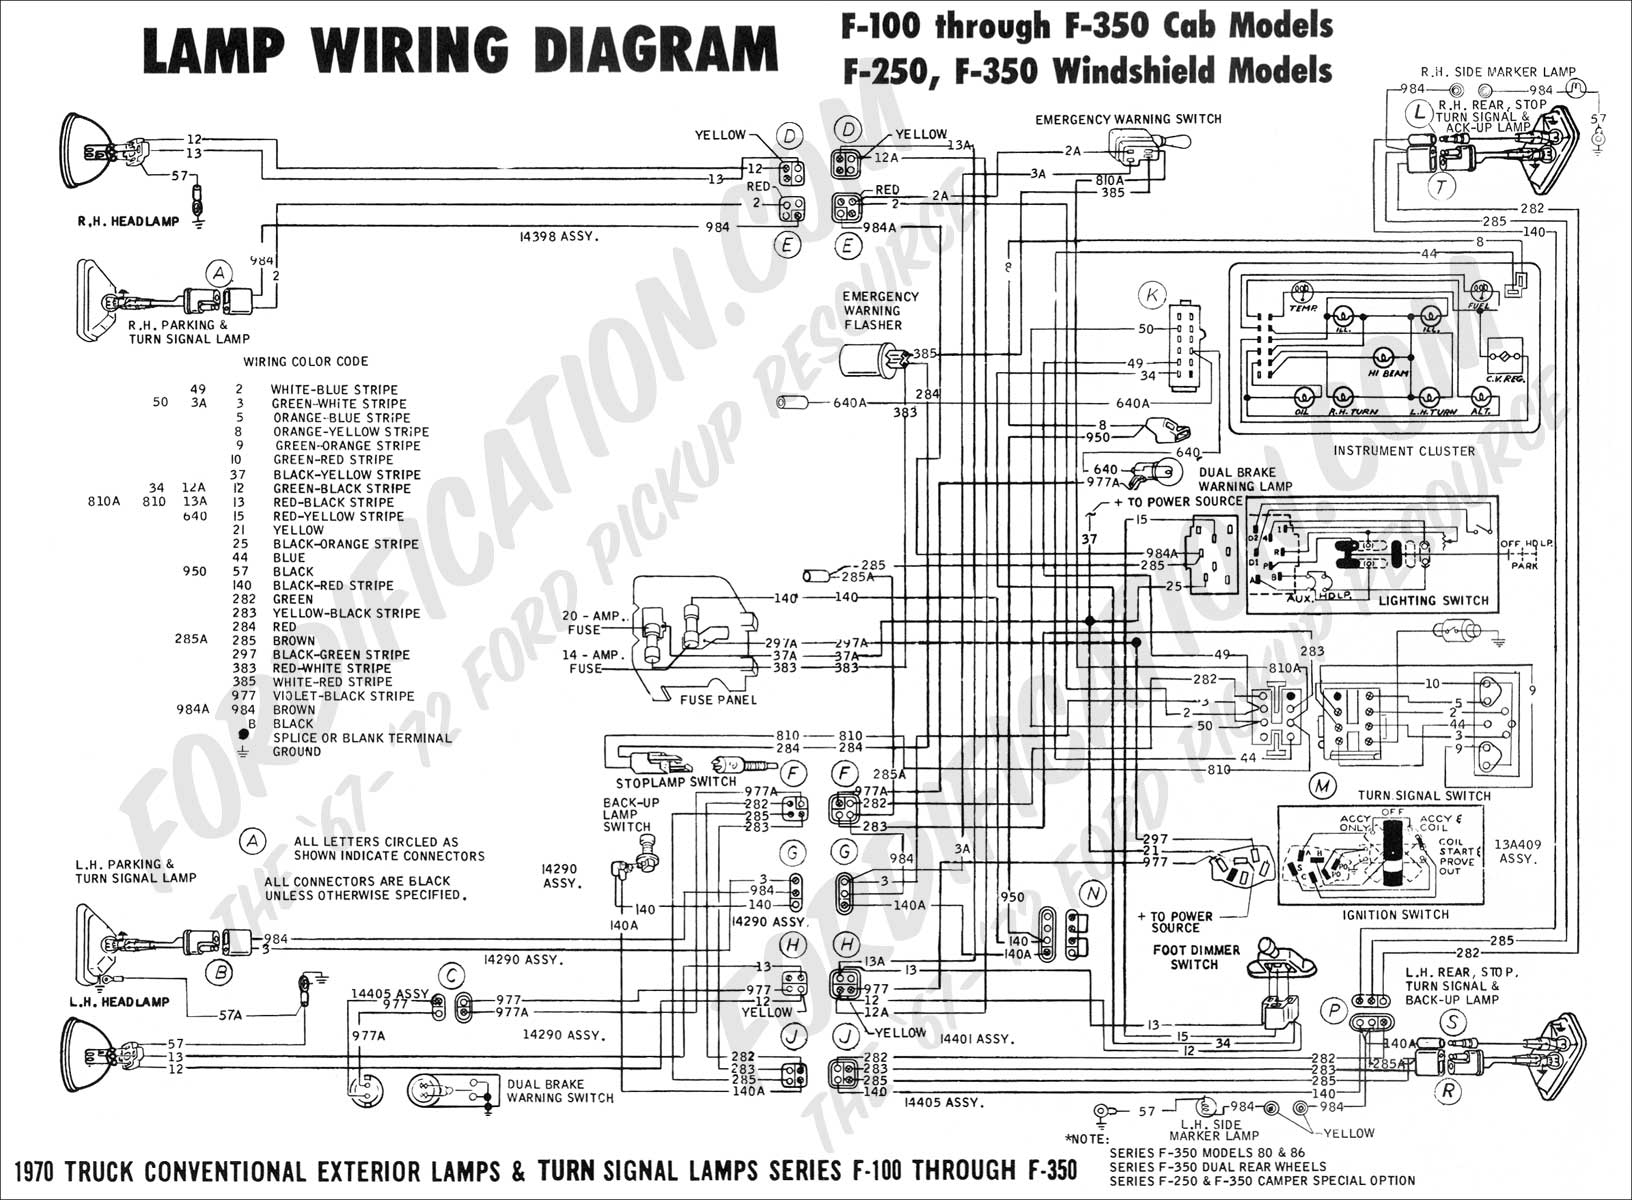 2002 Ford Mondeo Headlight Wiring Diagram | Wiring Diagram - Mondeo Trailer Wiring Diagram